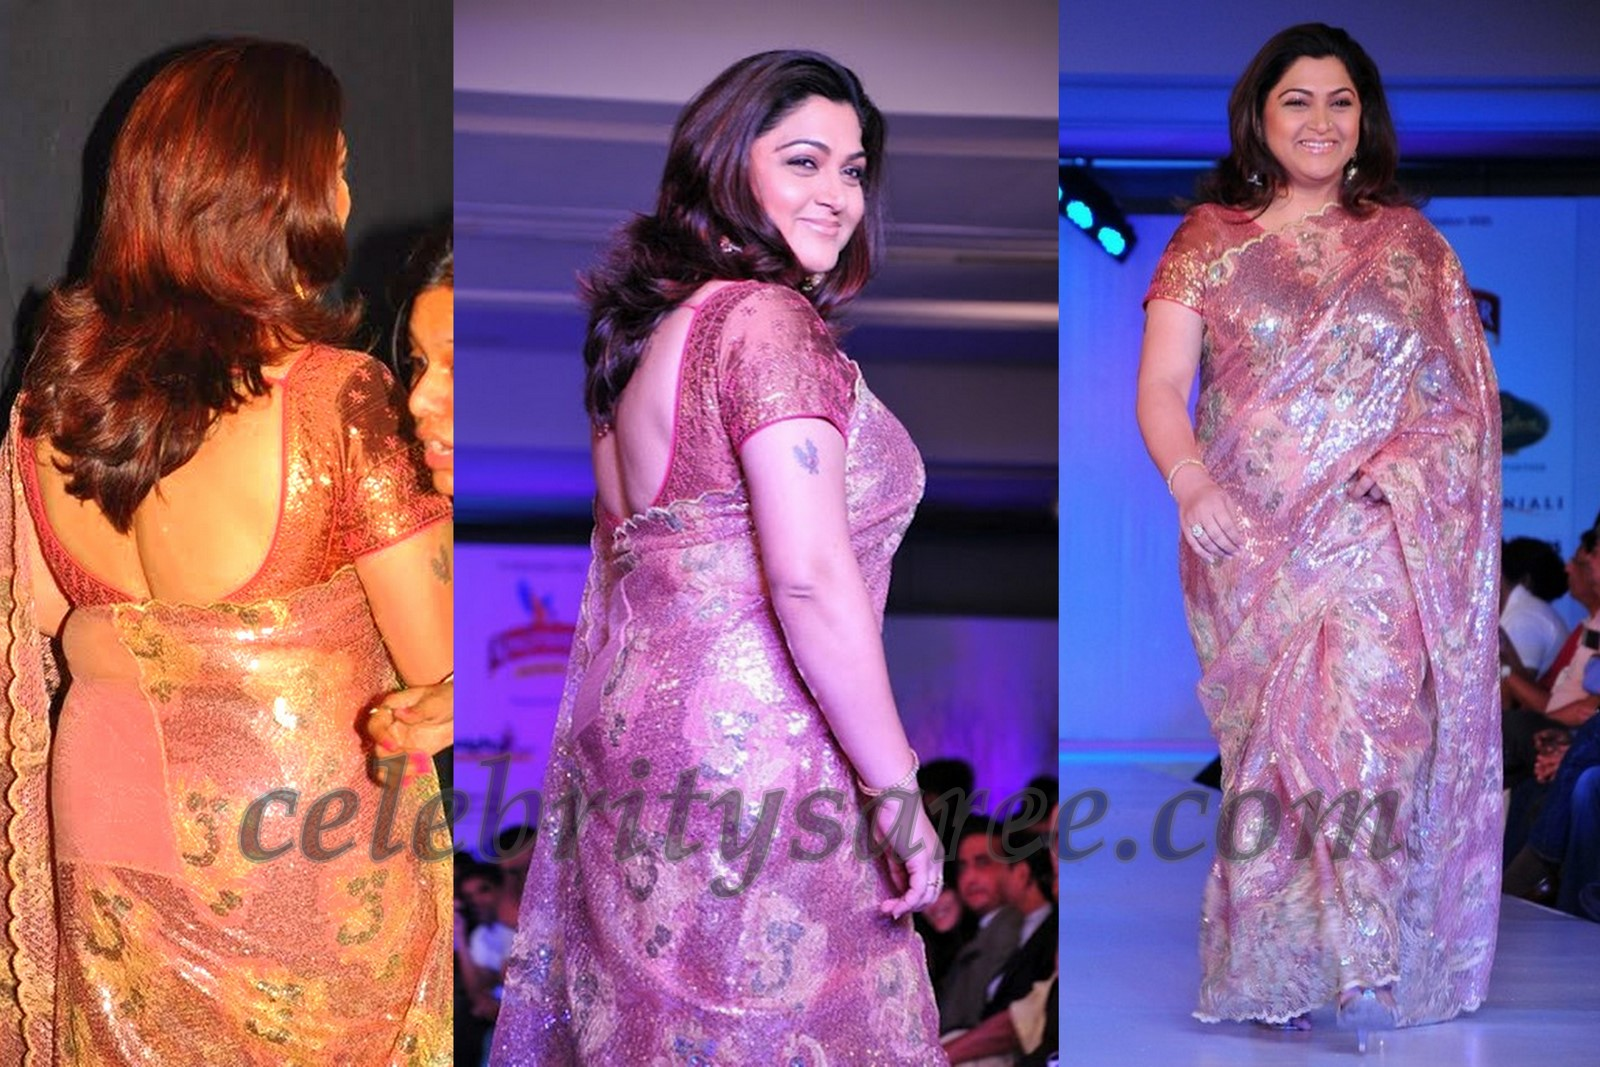 Kushboo Tamil Hot Awesome actress kushboo in transparent blouse - hot black blouse